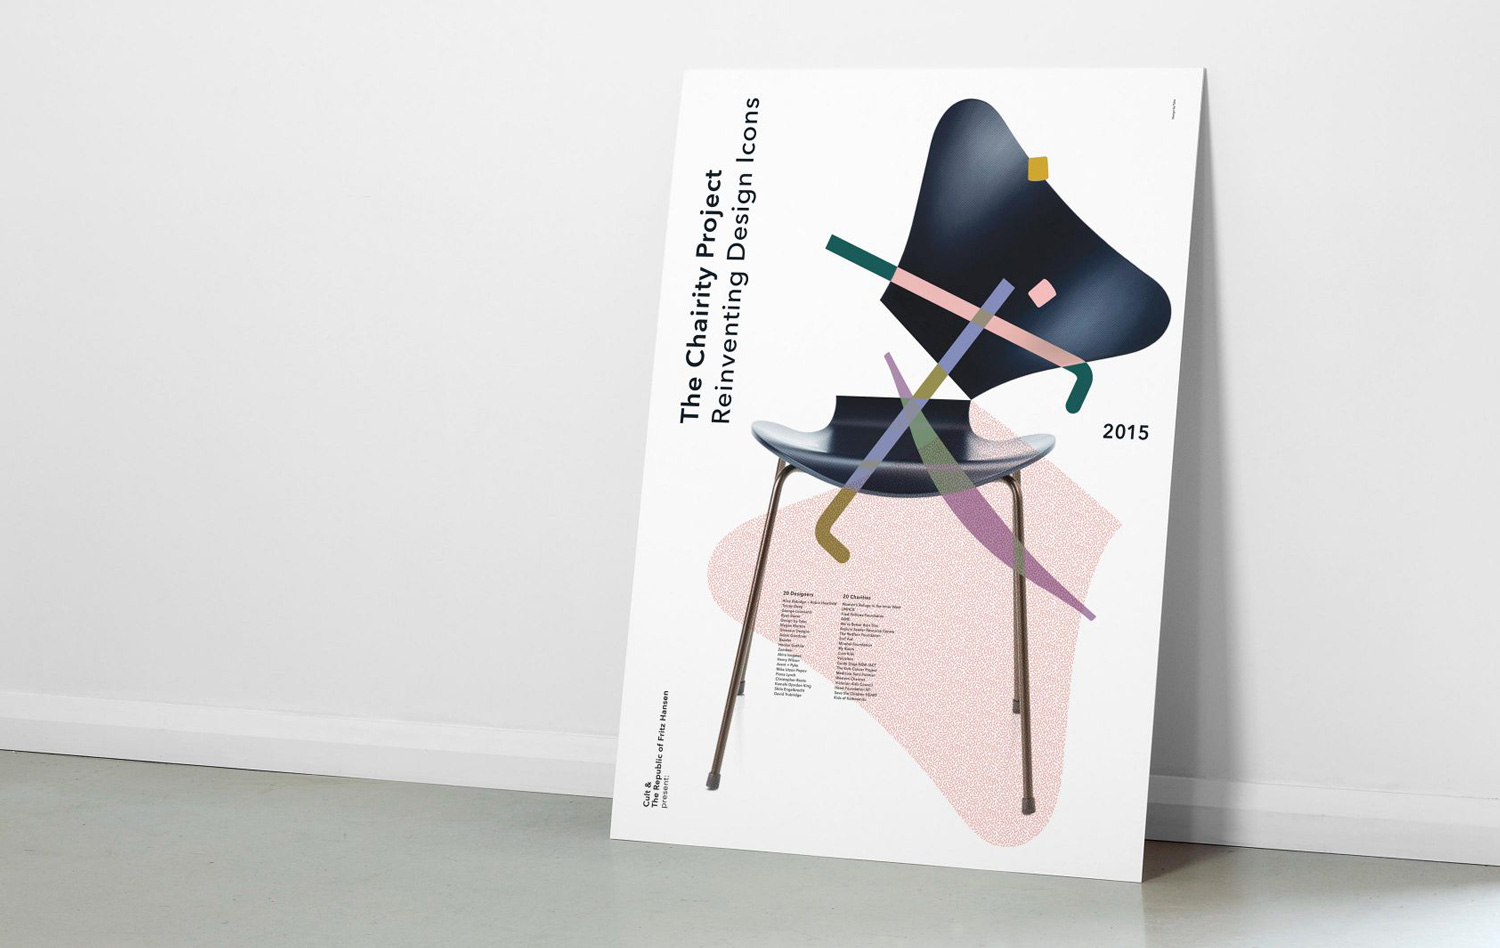 Cult Exhibition, Cult Exhibition Chair, Deign by Toko   Yellowtrace by Toko   Yellowtrace